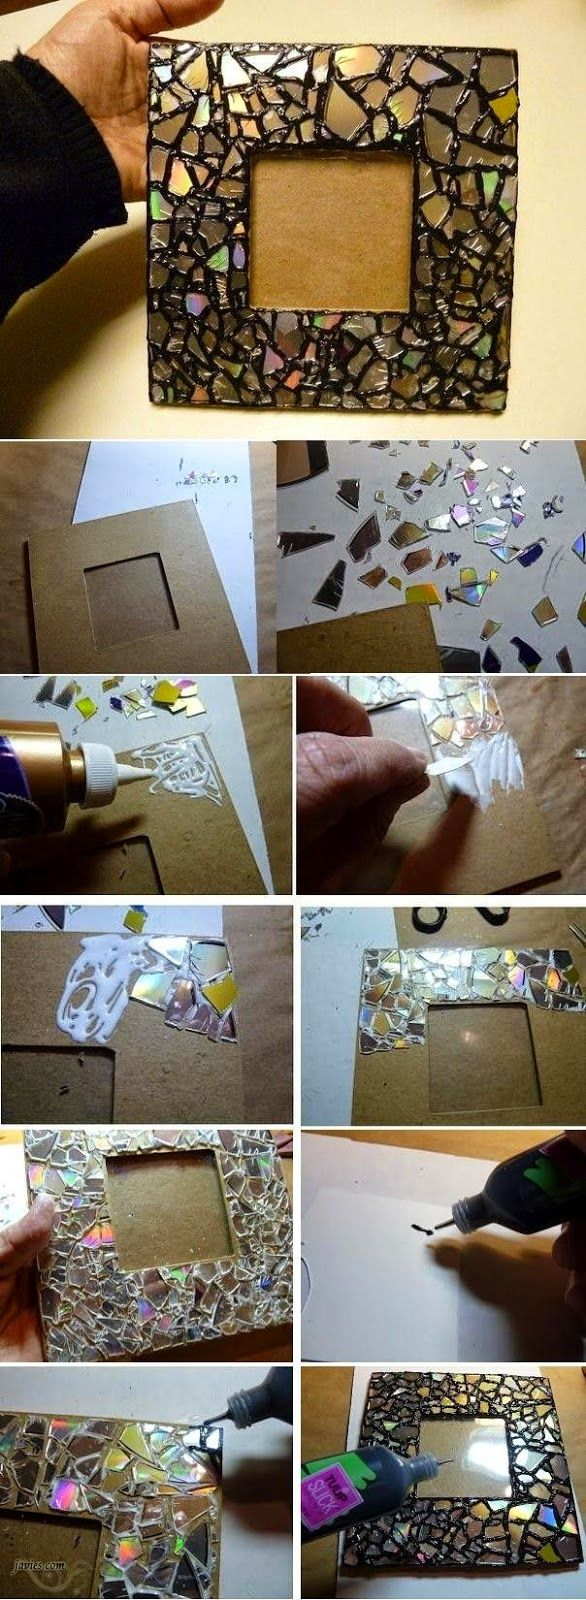 DIY TUTS AND HACKS: Diy tutorials Thank you!! I'm going to try this - you make it look easy :-)